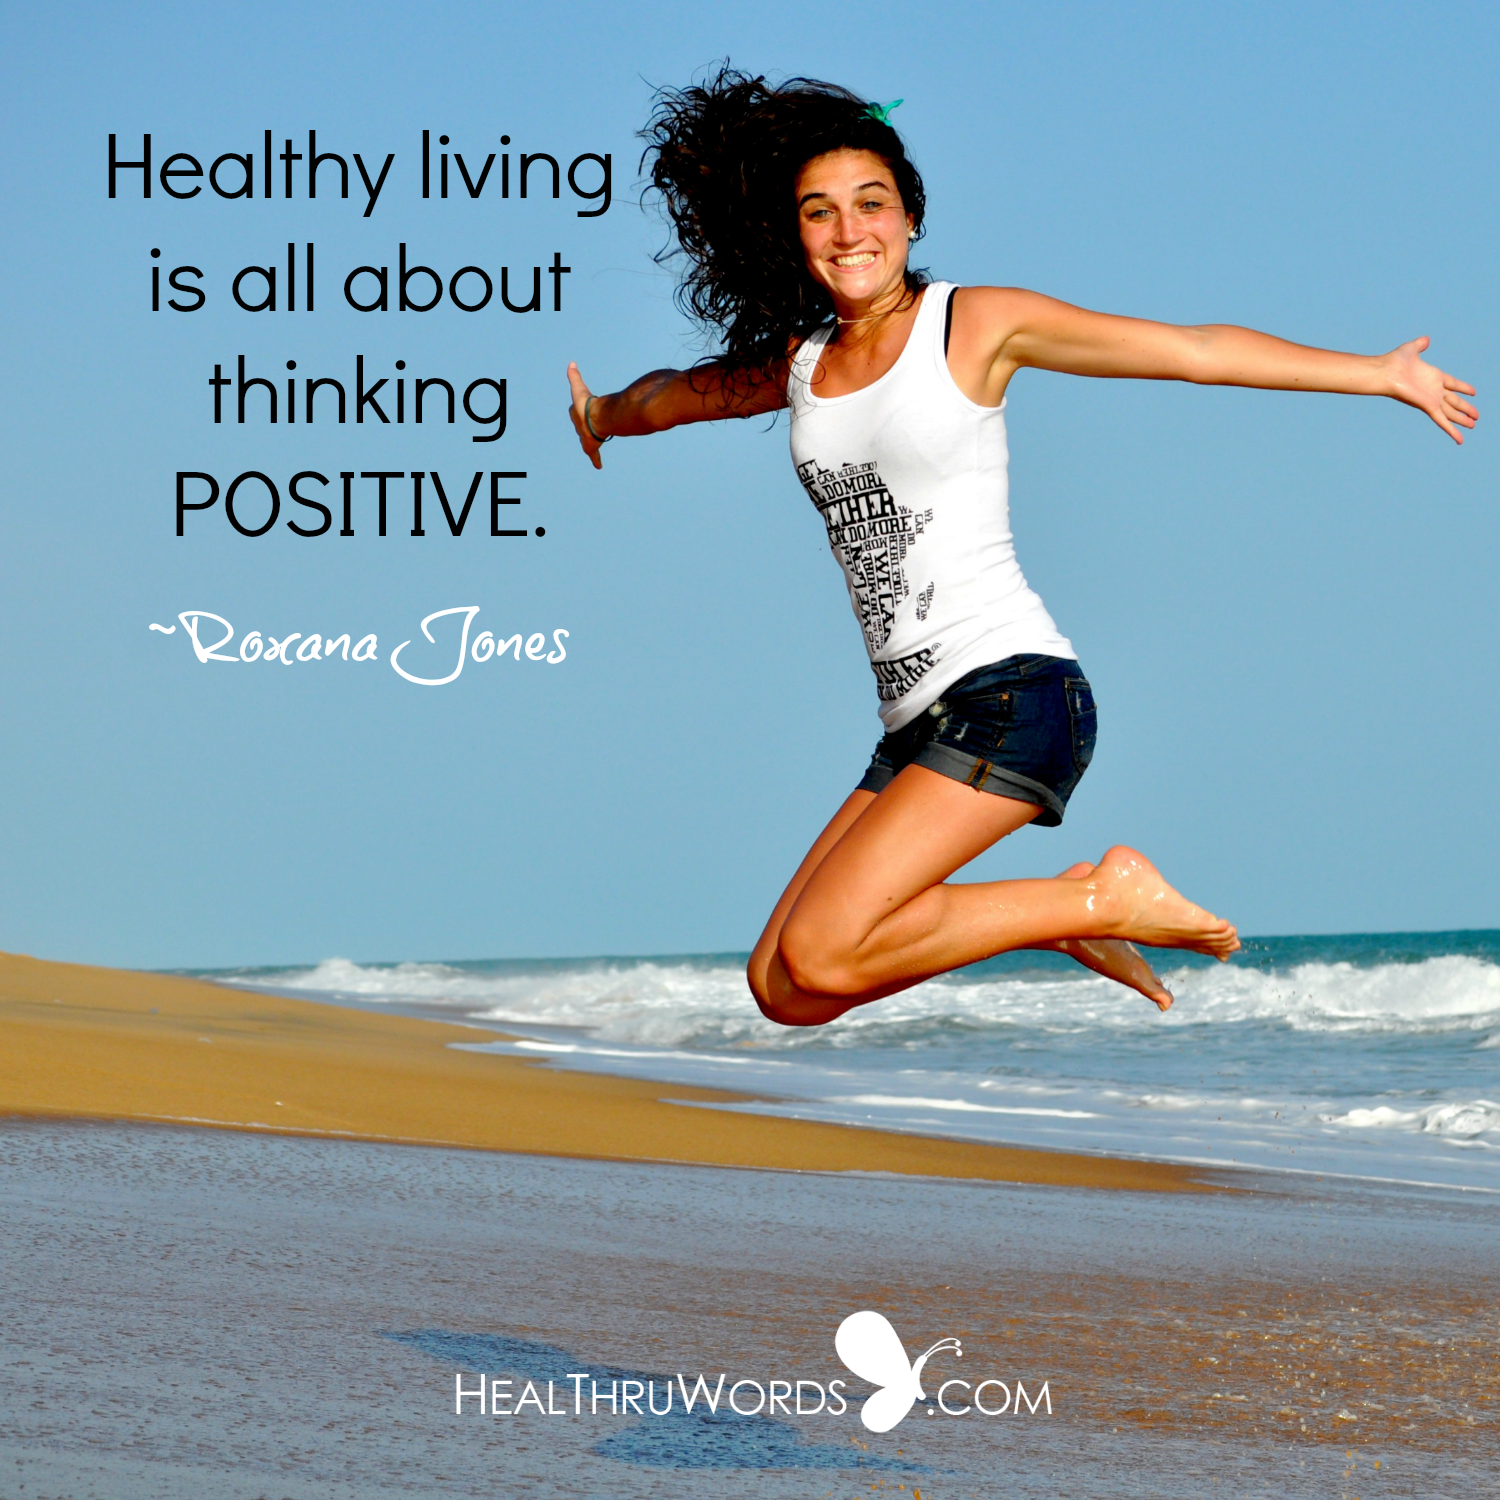 Inspirational Image: Health and Positivity